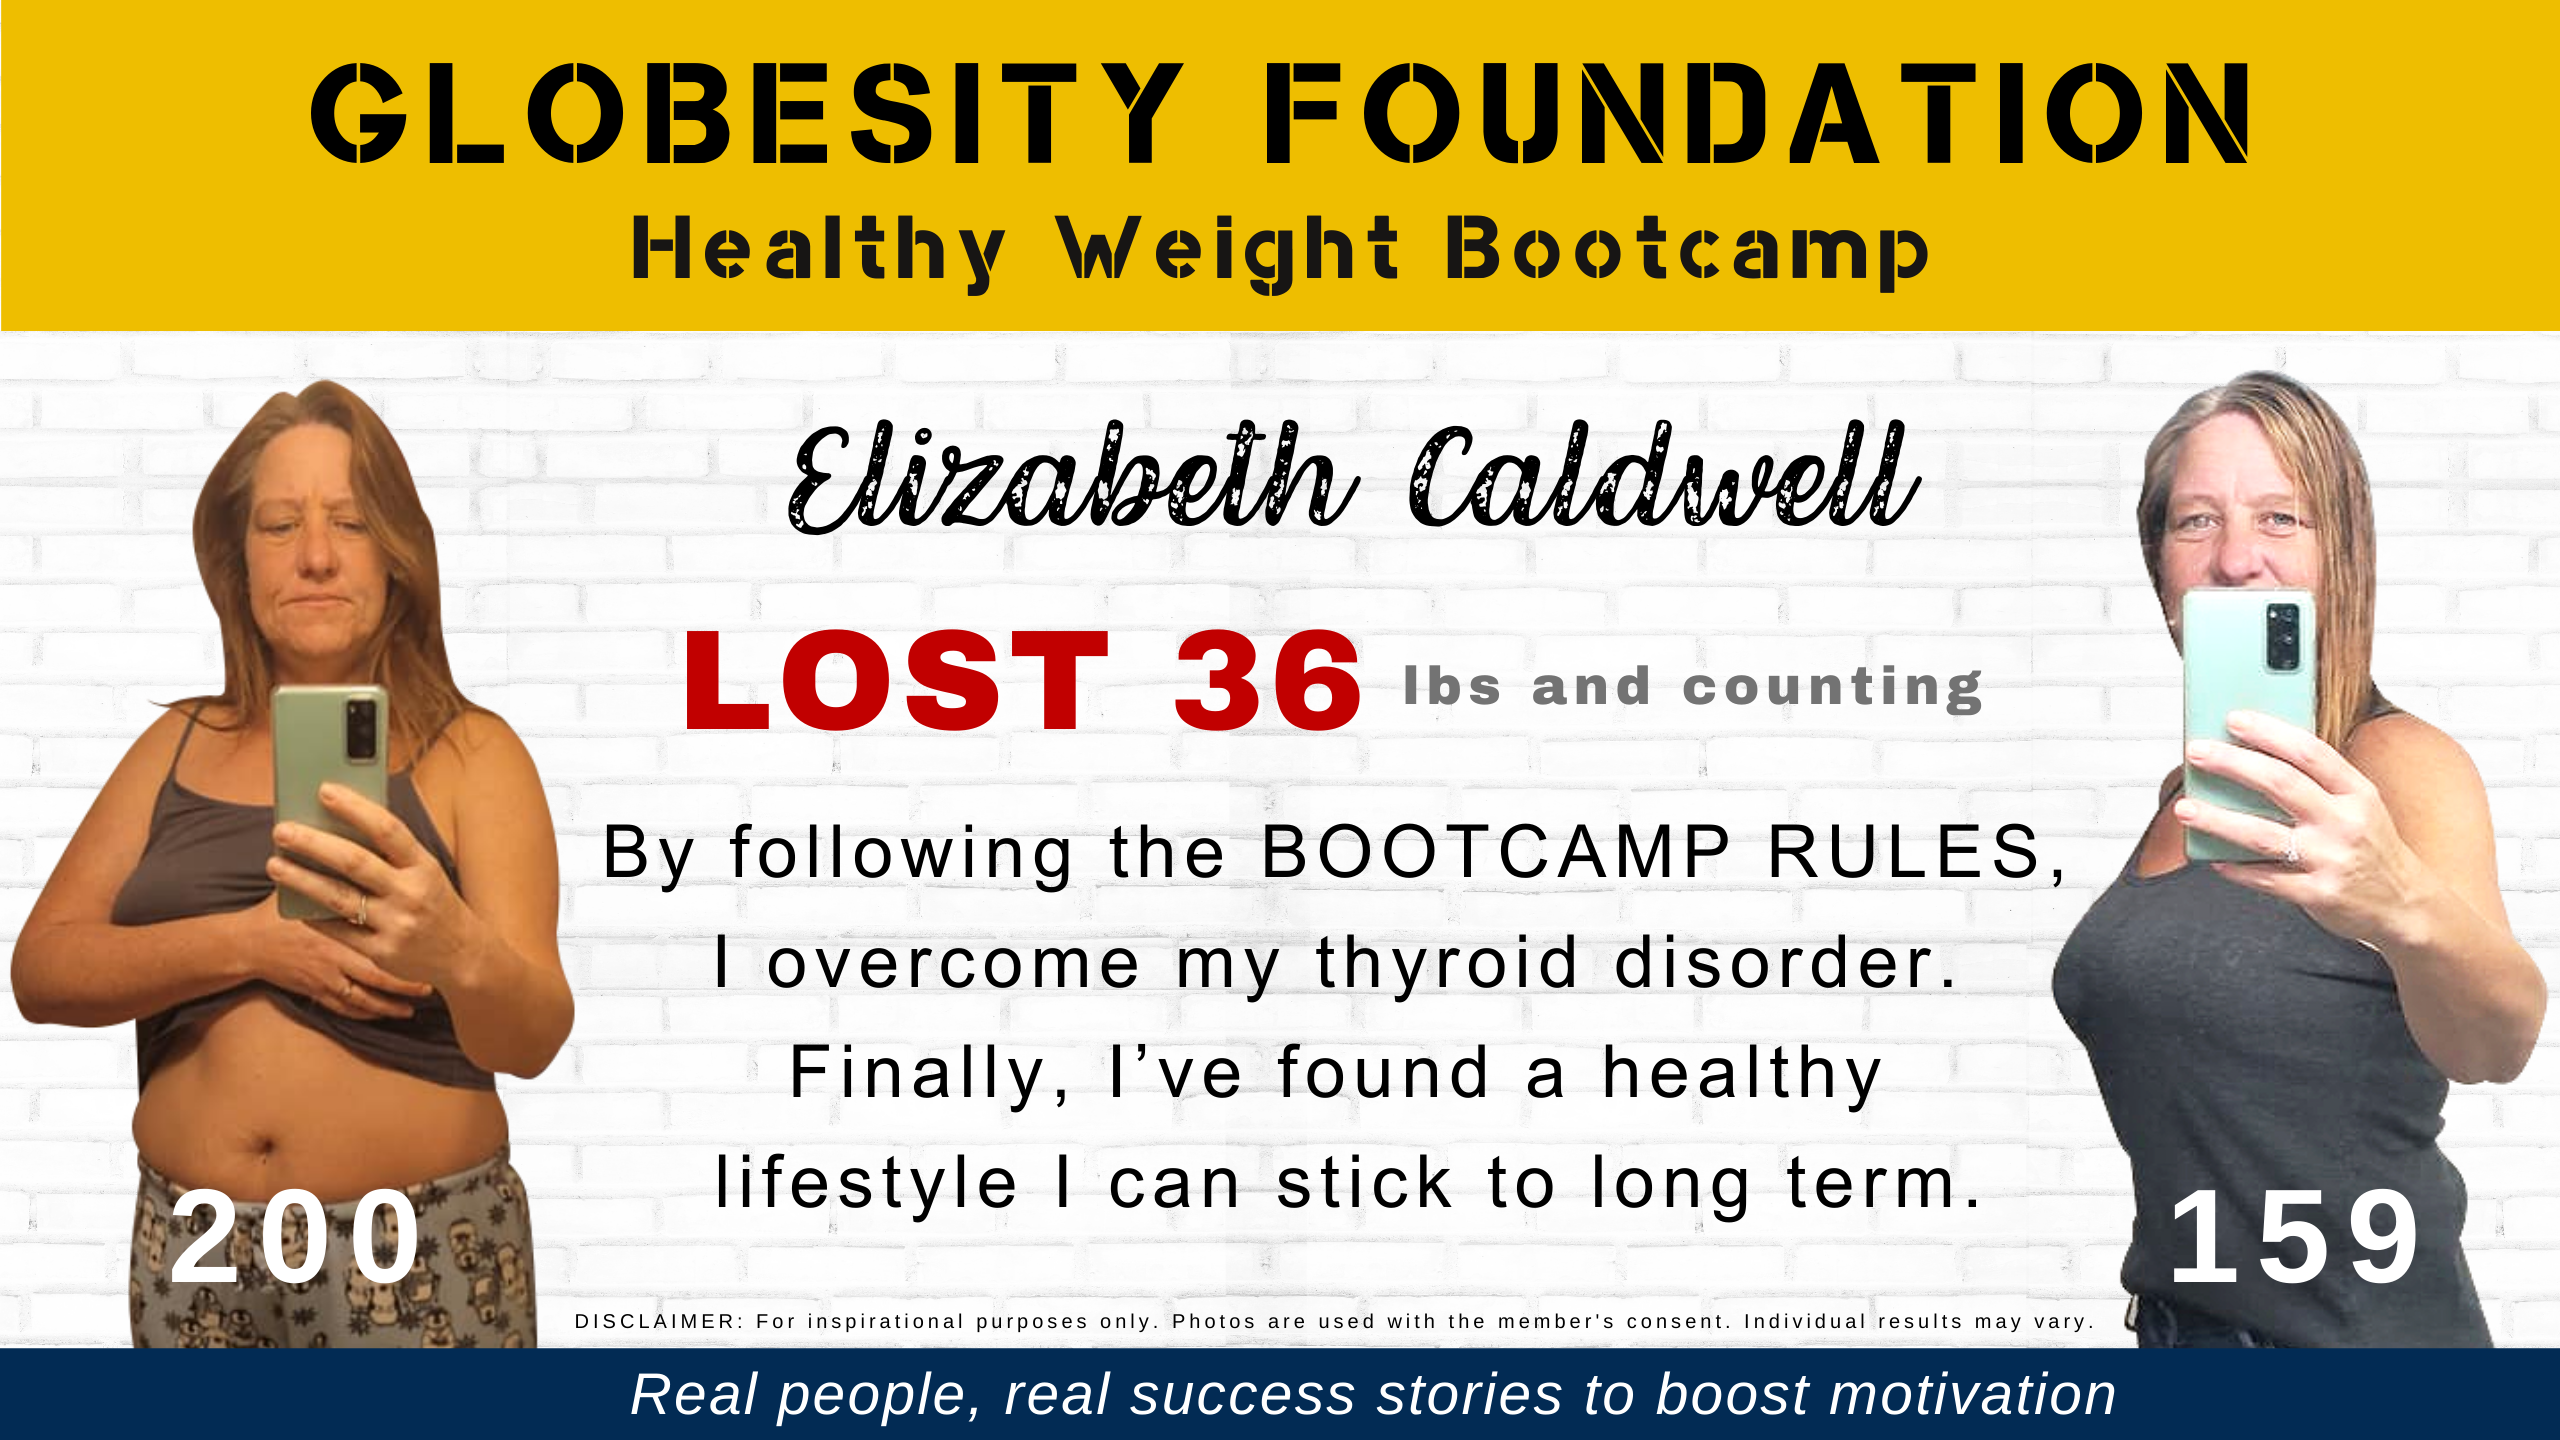 LIZ CALDWELL OVERCAME HER THYROID DISORDER AND LOST WEIGHT WITH THE GLOBESITY FOUNDATION HEALTHY WEIGHT BOOTCAMP